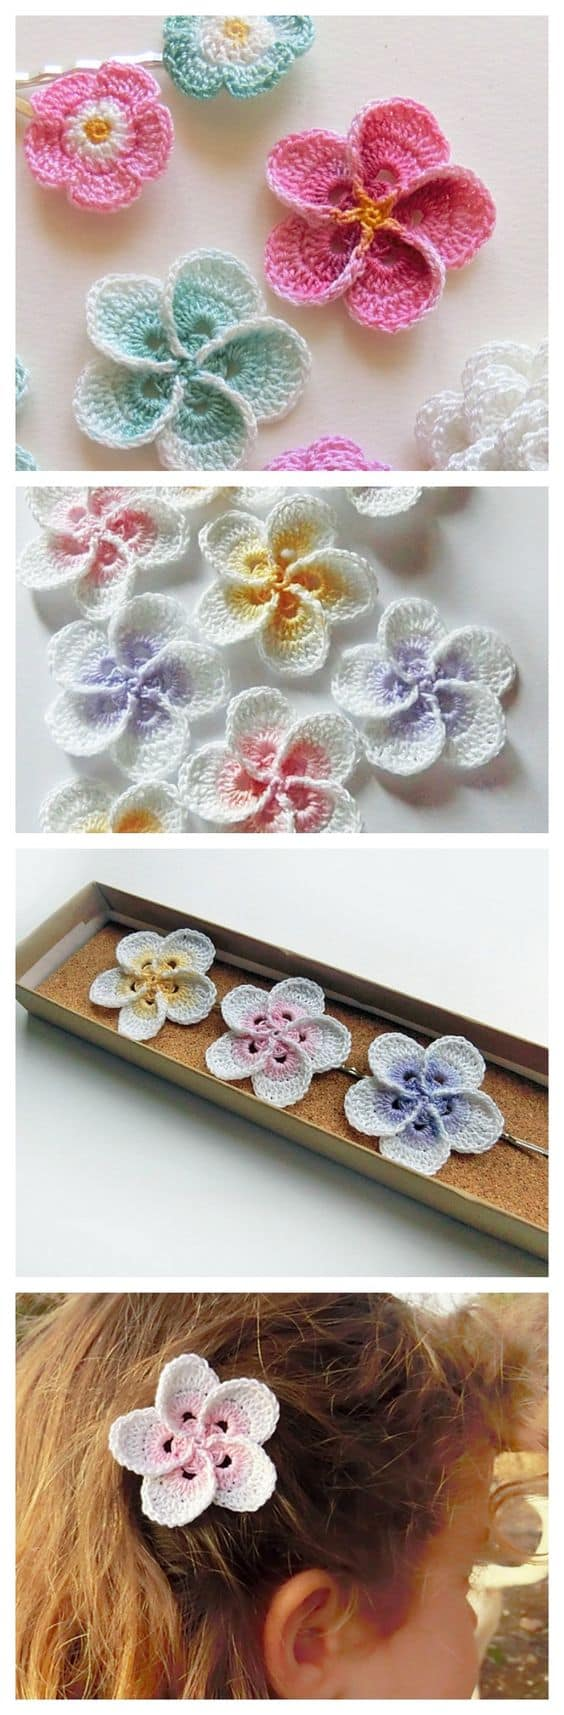 Crochet Plumeria Flower Pattern